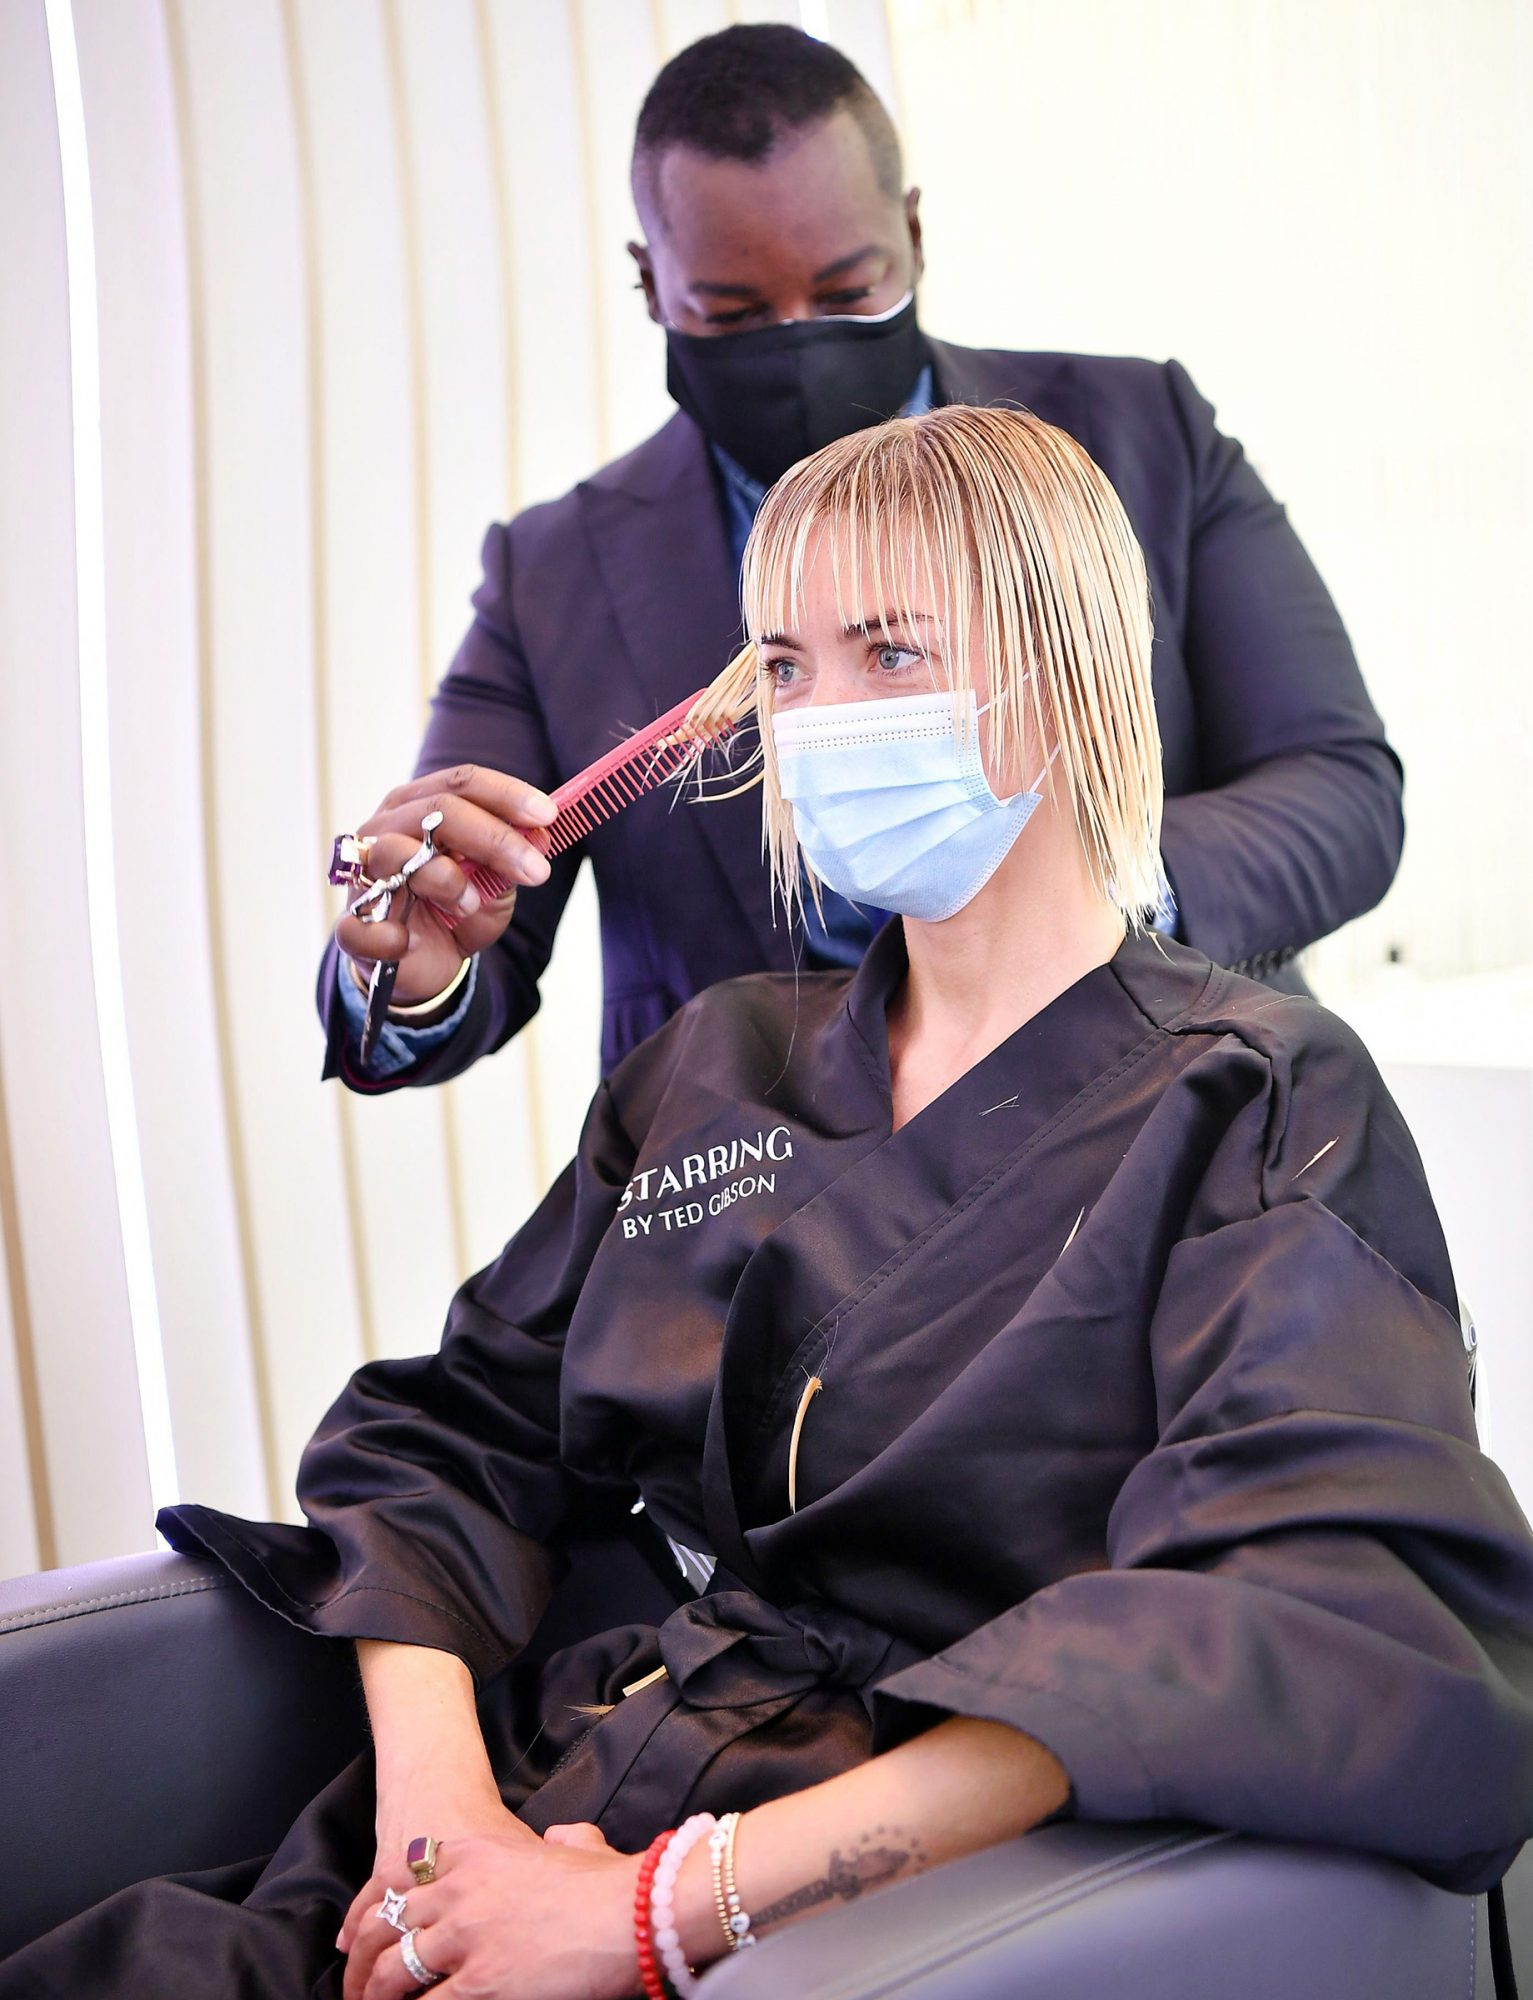 Ted Gibson cuts Jaime King's hair at the opening of STARRING by Ted Gibson Salon on August 17, 2020